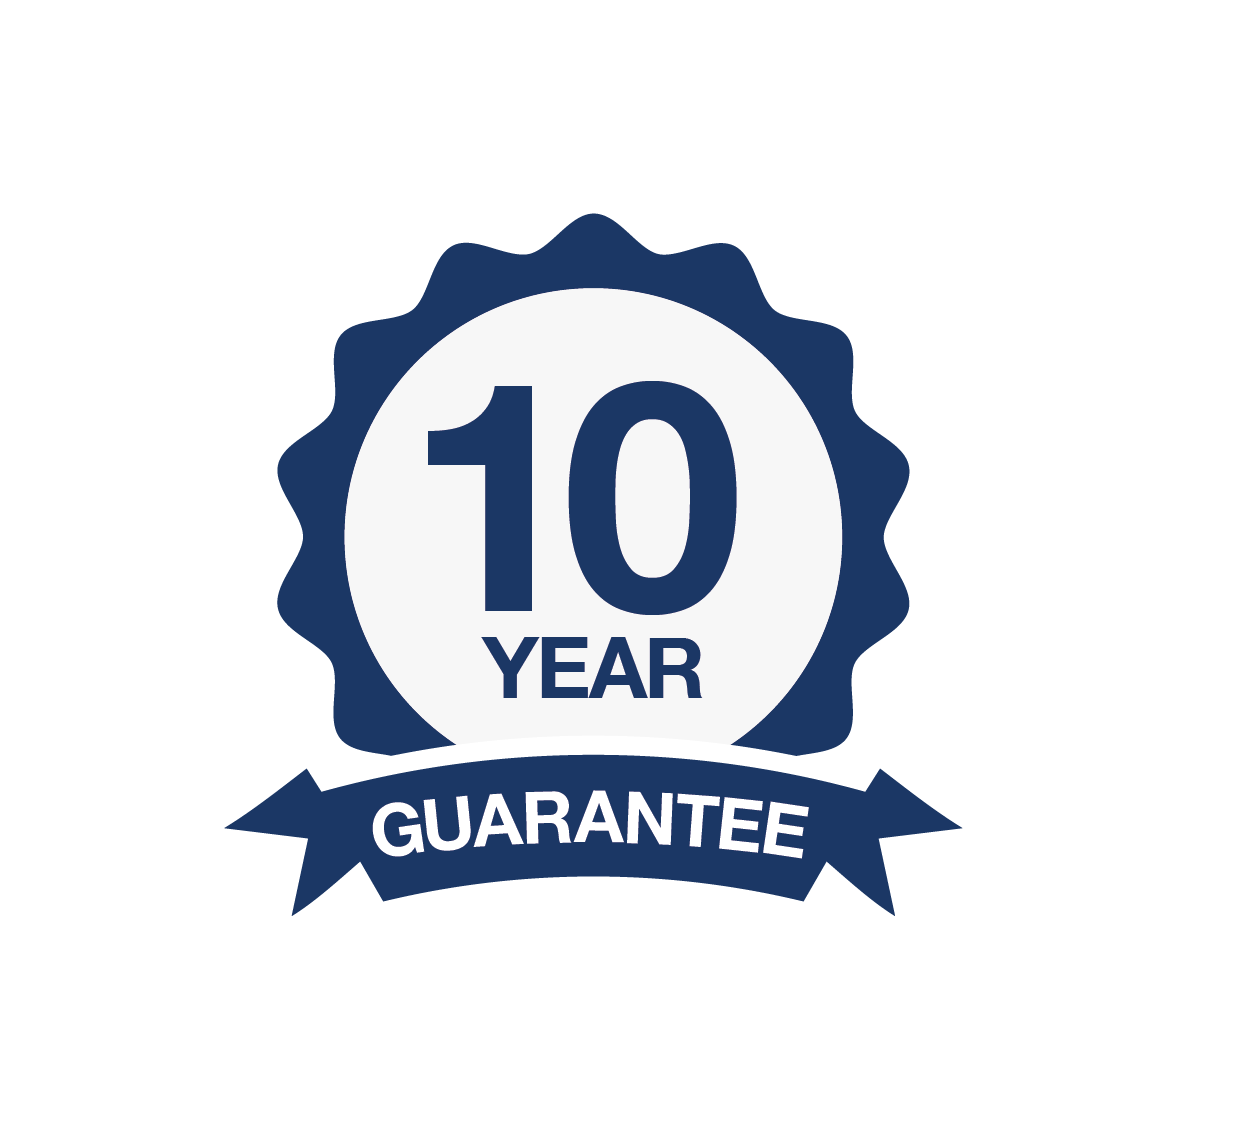 10year guarantee icon